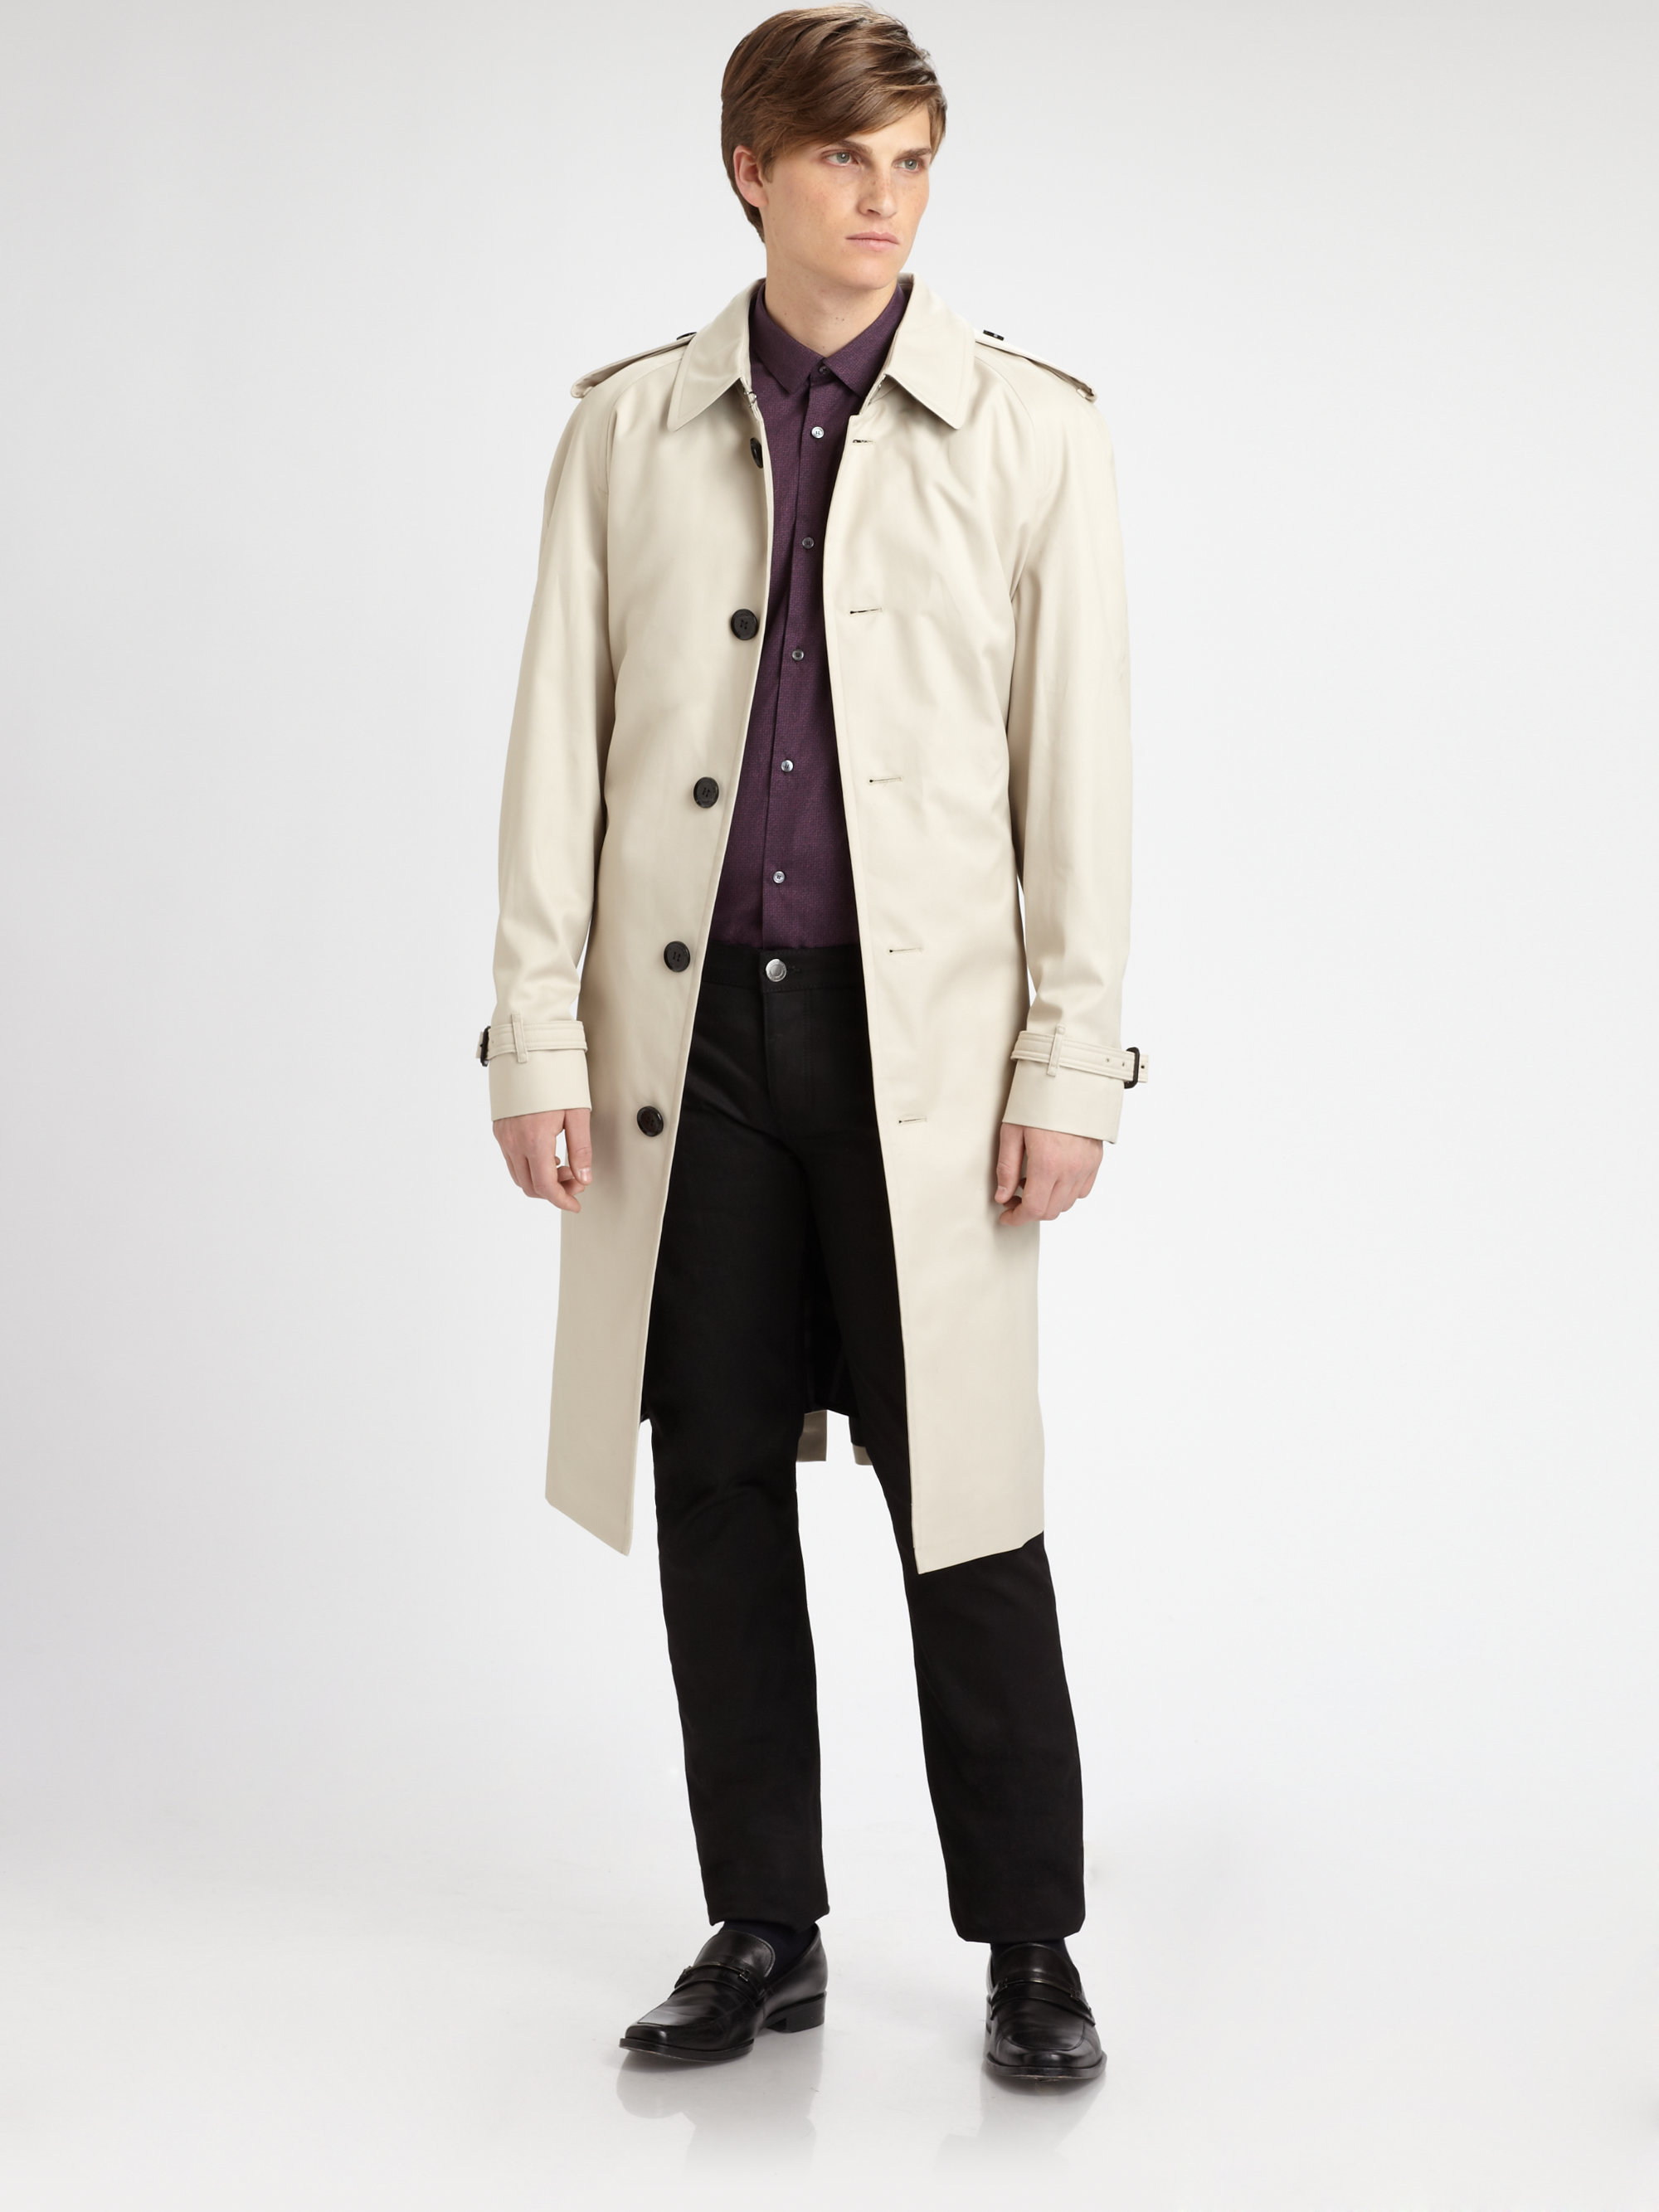 Lyst Burberry Trench 19 Long Raincoat In Natural For Men